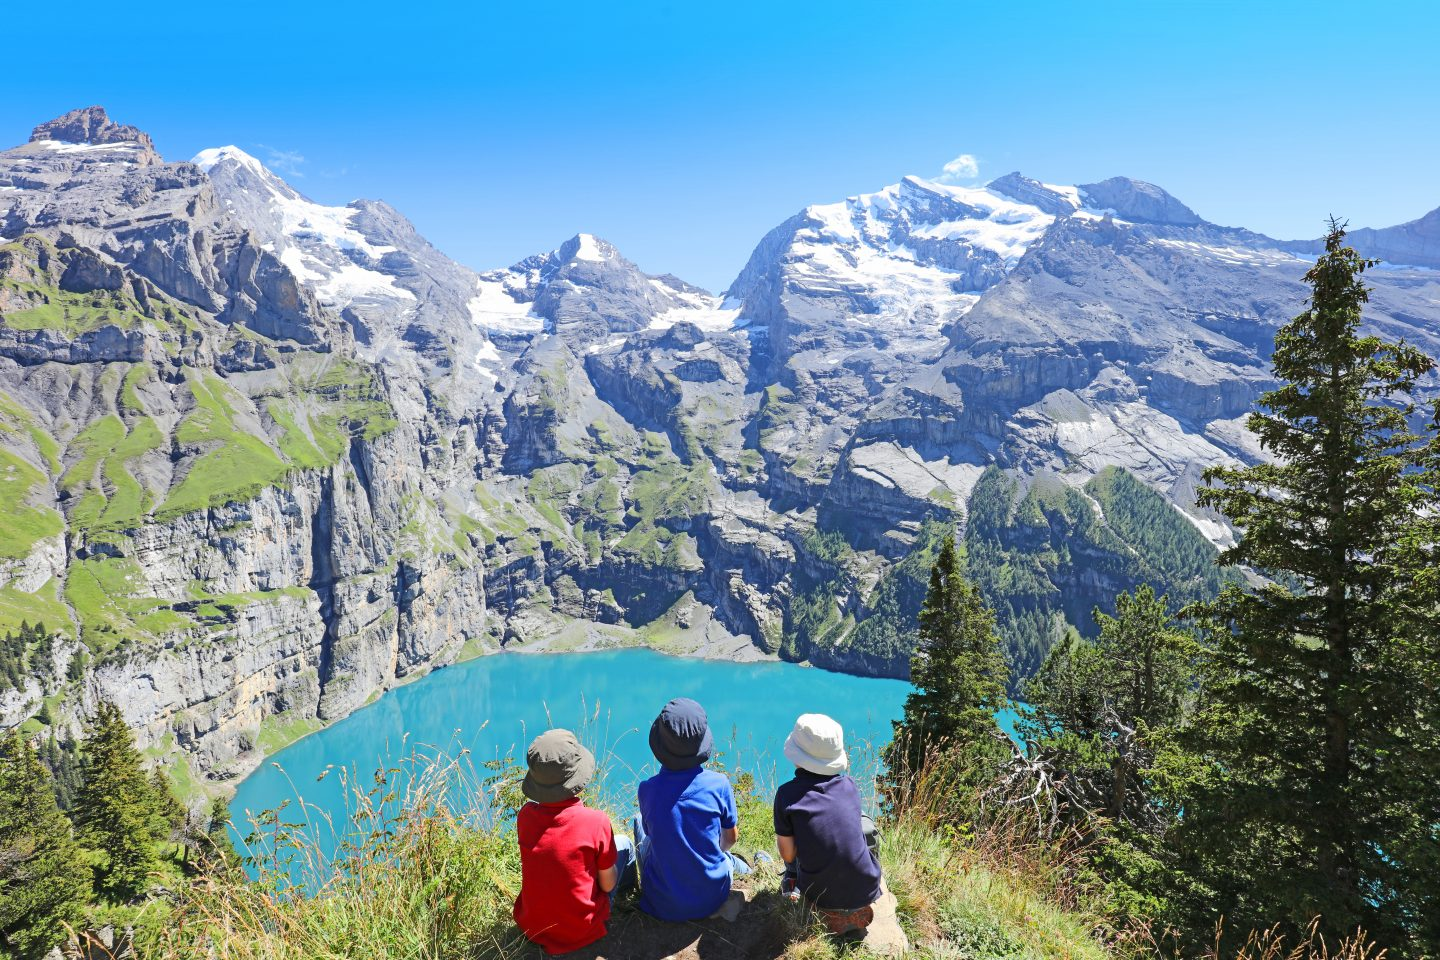 Children Hiking in Swiss Mountains Admiring Scenic Landscape at Oeschinensee